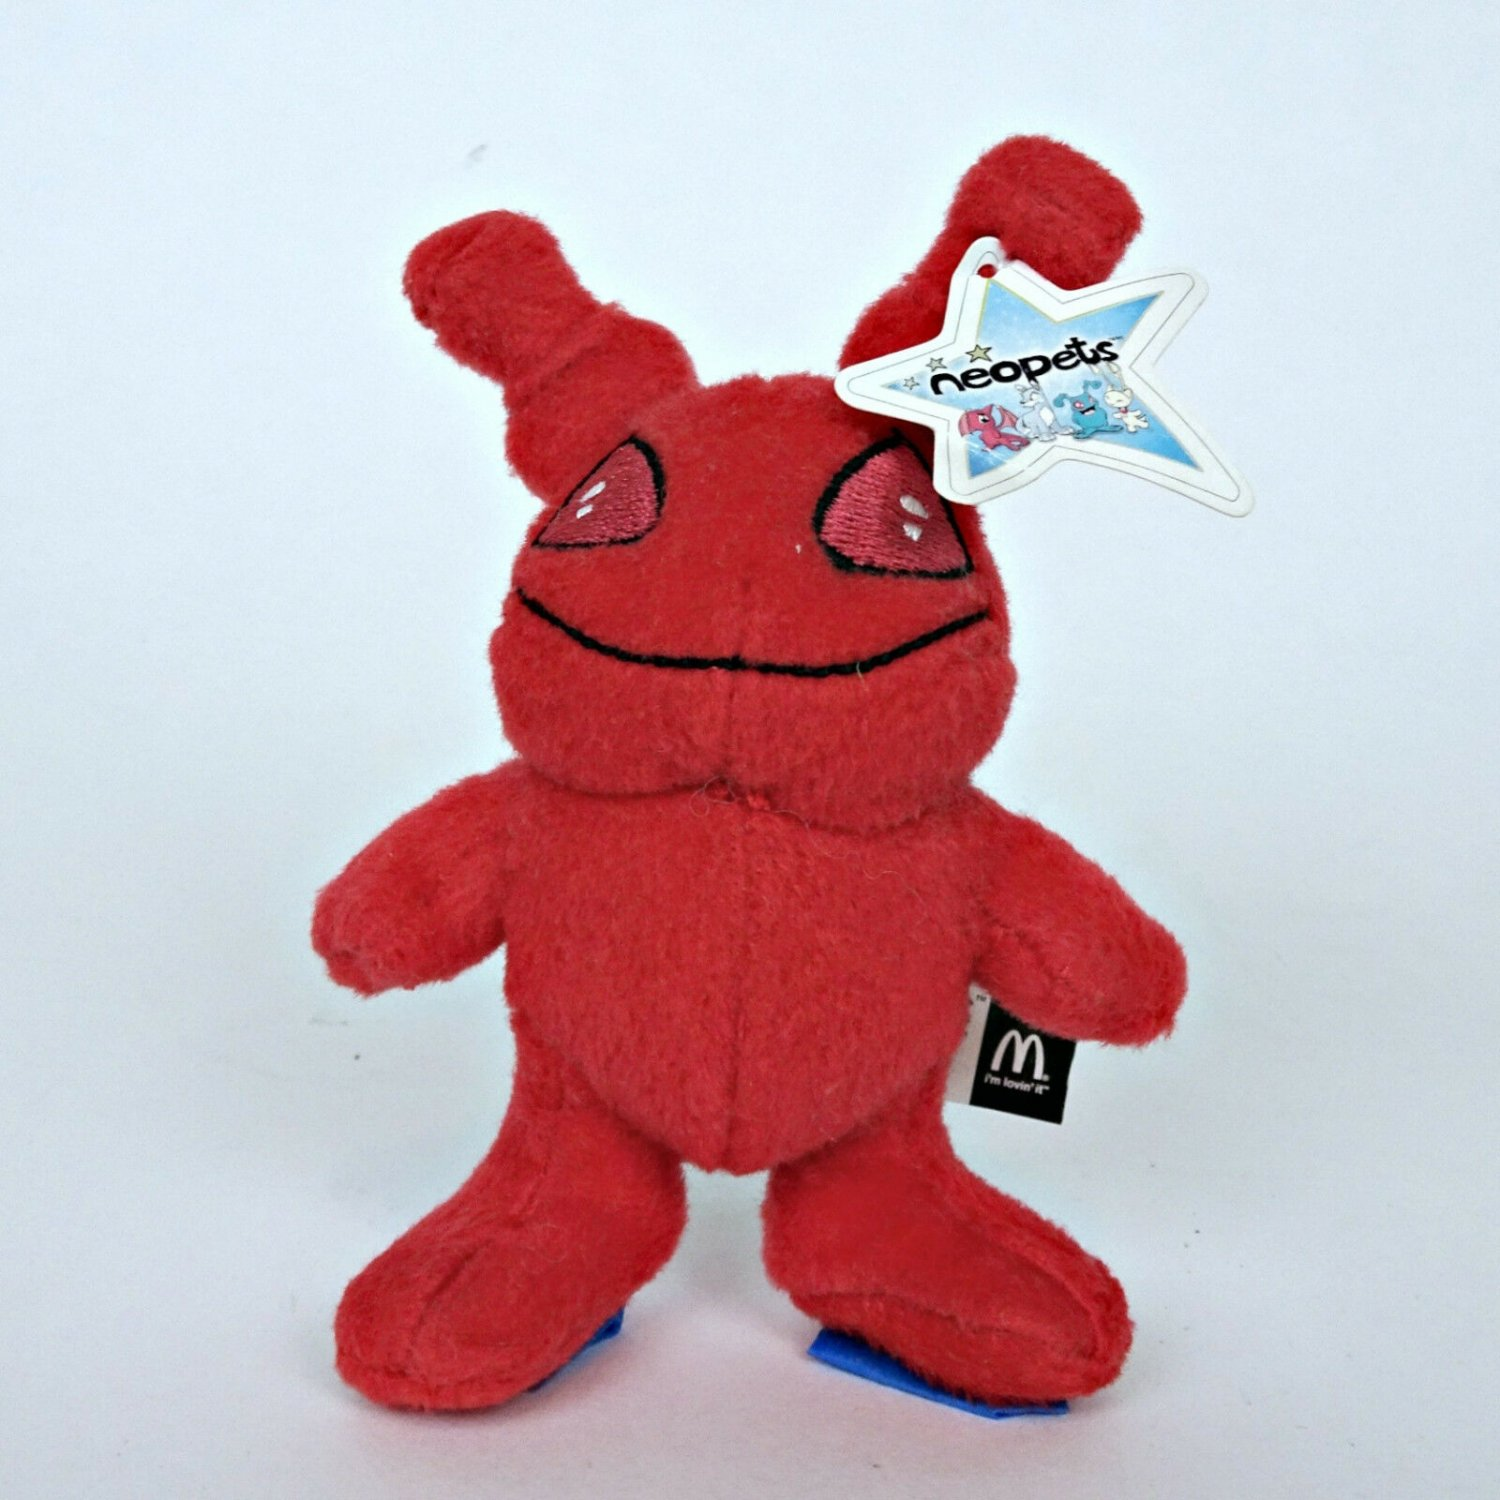 Neopets Red Grundo 2004 McDonald�s Toy Plush Stuffed 4.5� Happy Meals Pocket